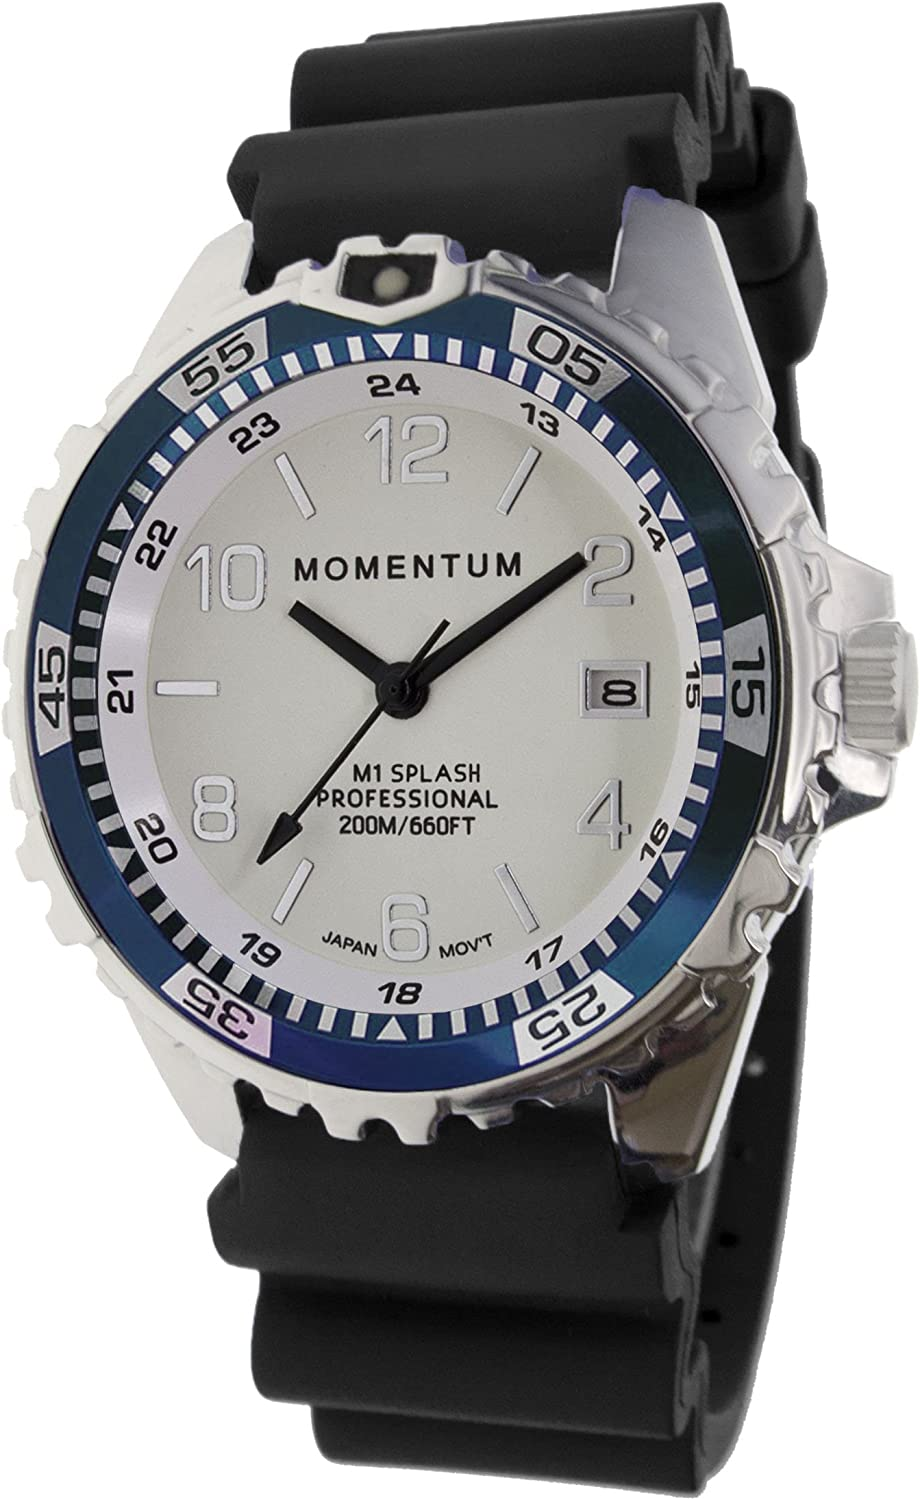 Momentum Men Women s Dive Series Quartz Sports Watch – M1 Splash Water Resistant, Easy to Read White Luminous Dial, Date, Screw Crown, Stainless Steel Case Bezel Black Band Analog